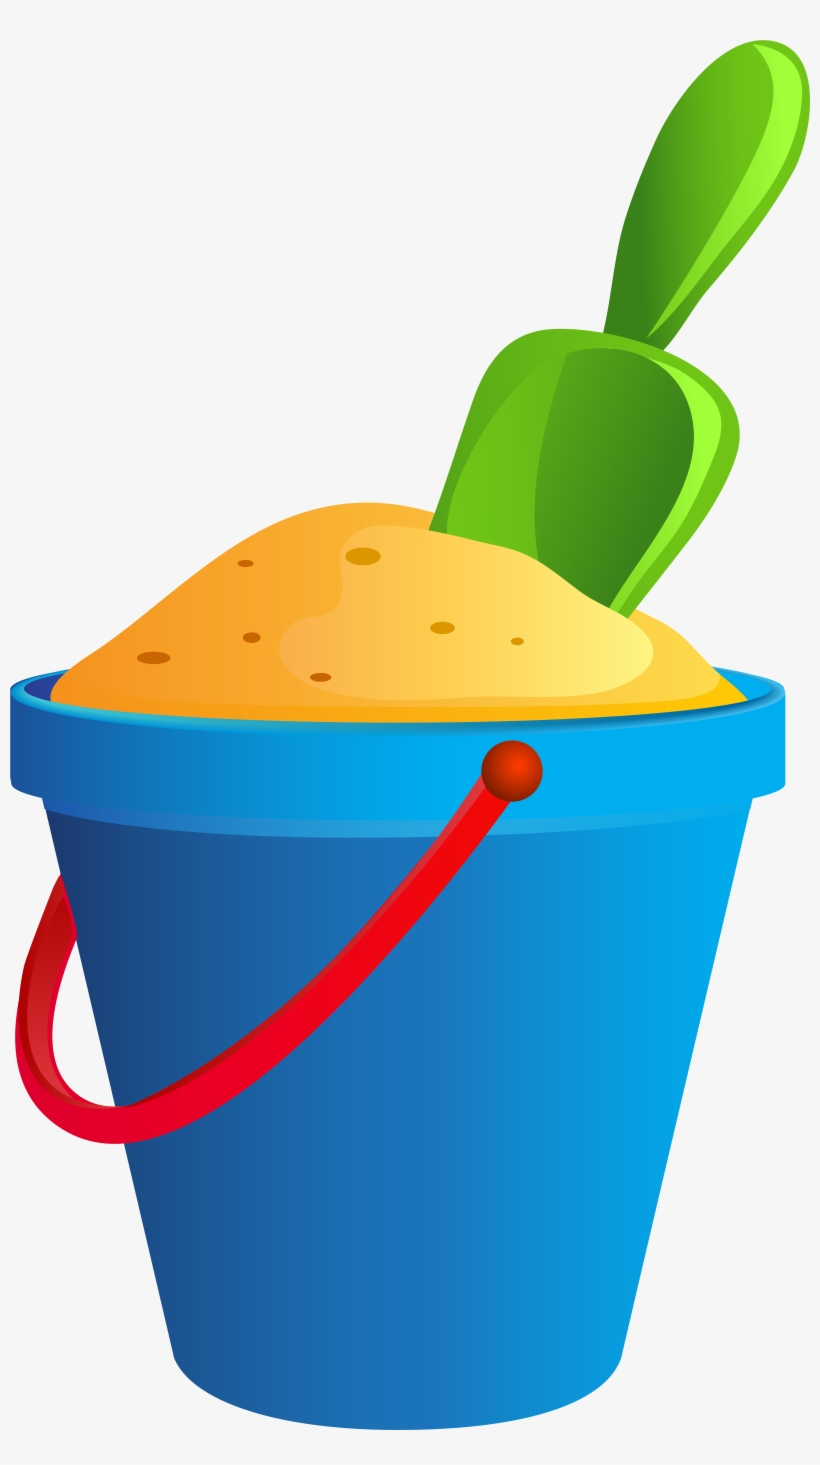 Pail Clipart At Getdrawings.